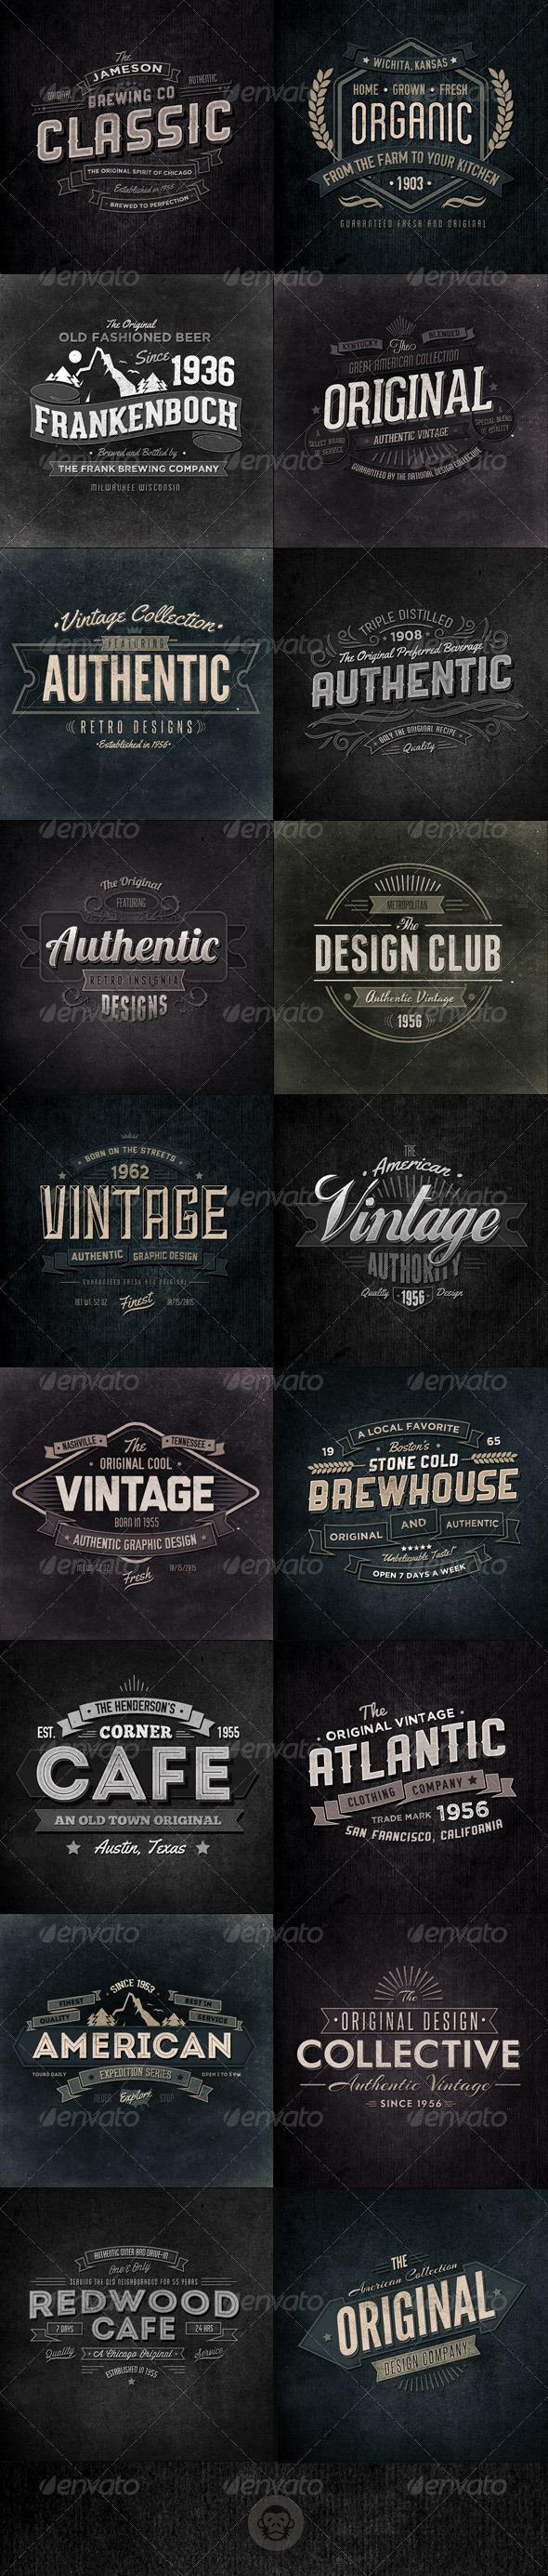 Retro Insignia Badge and Label PSD Files | PSDDude